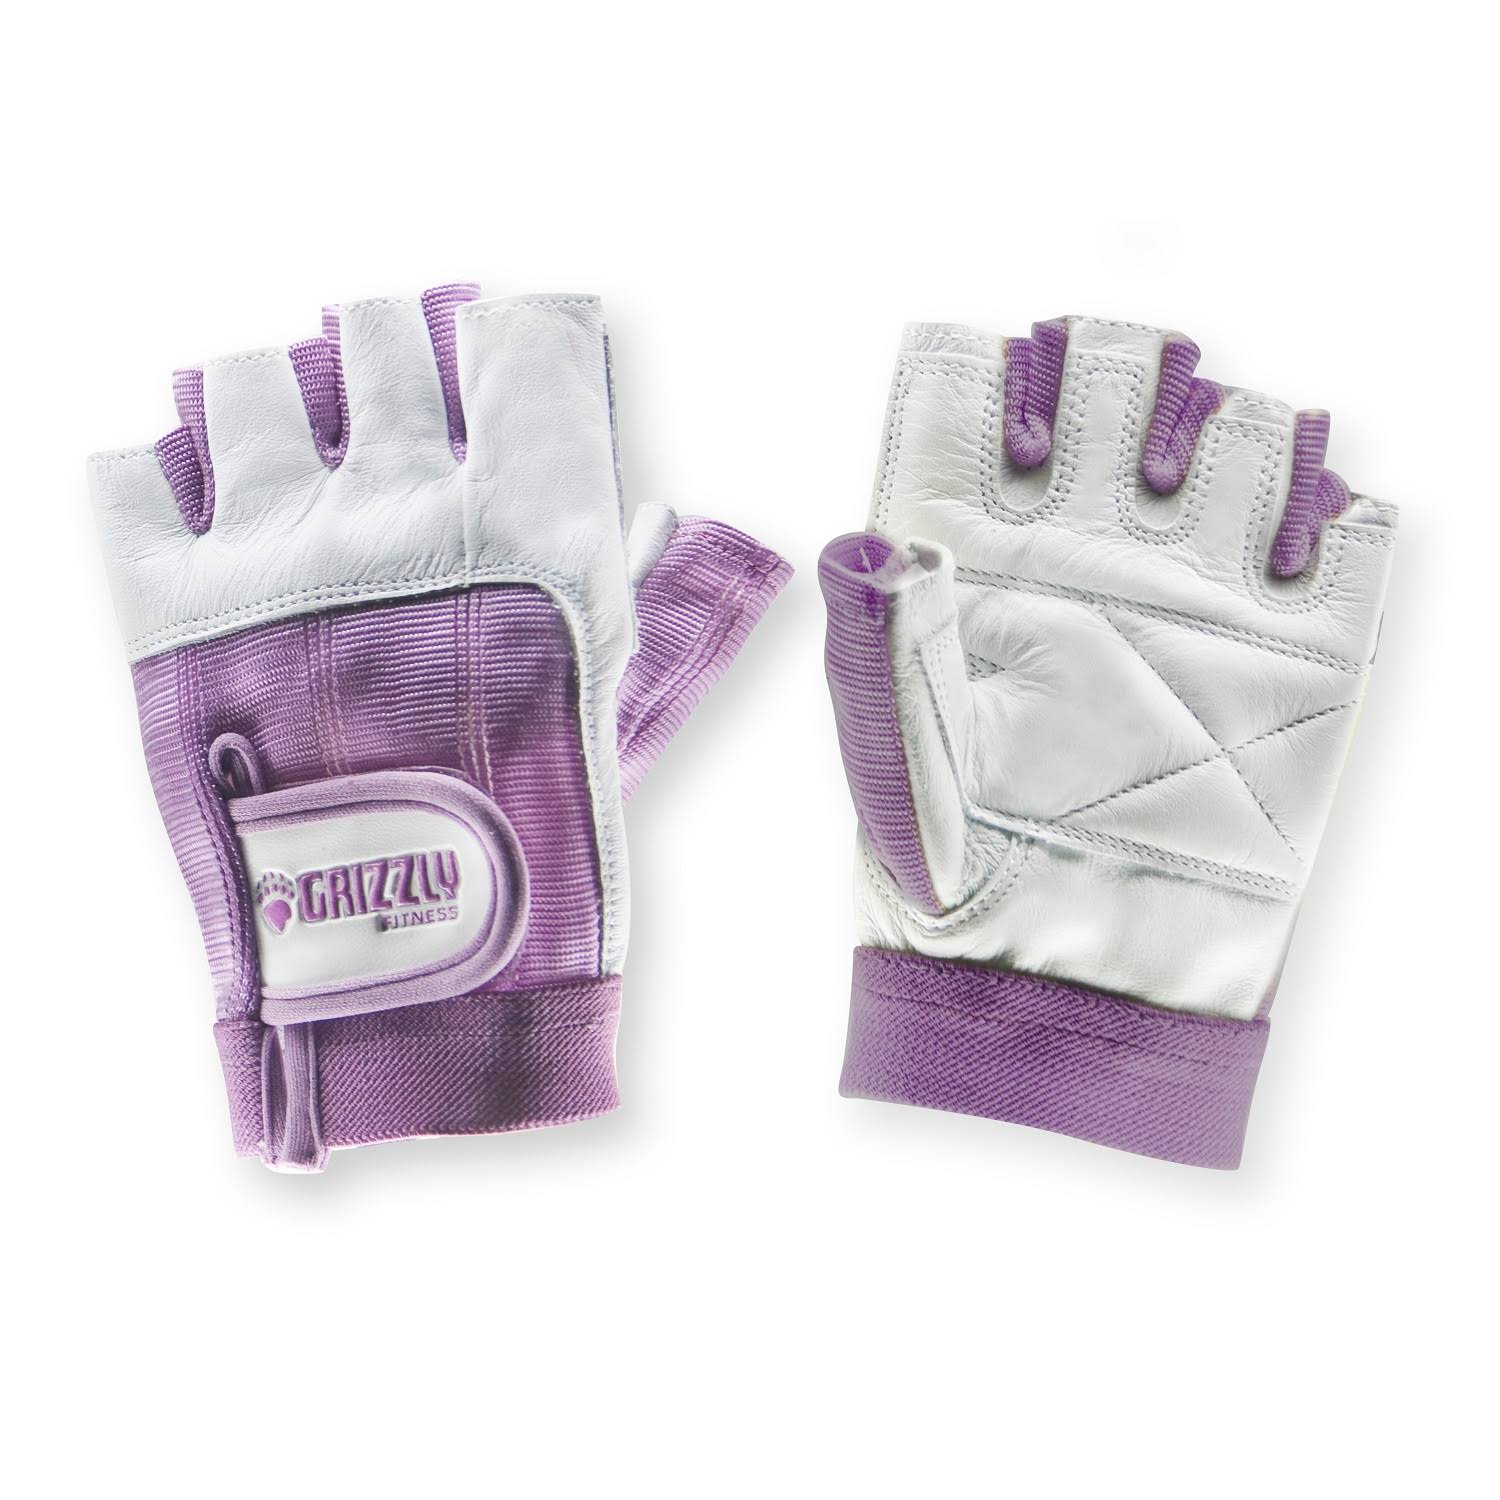 Grizzly Fitness Womens Paw Training Gloves Purple Small